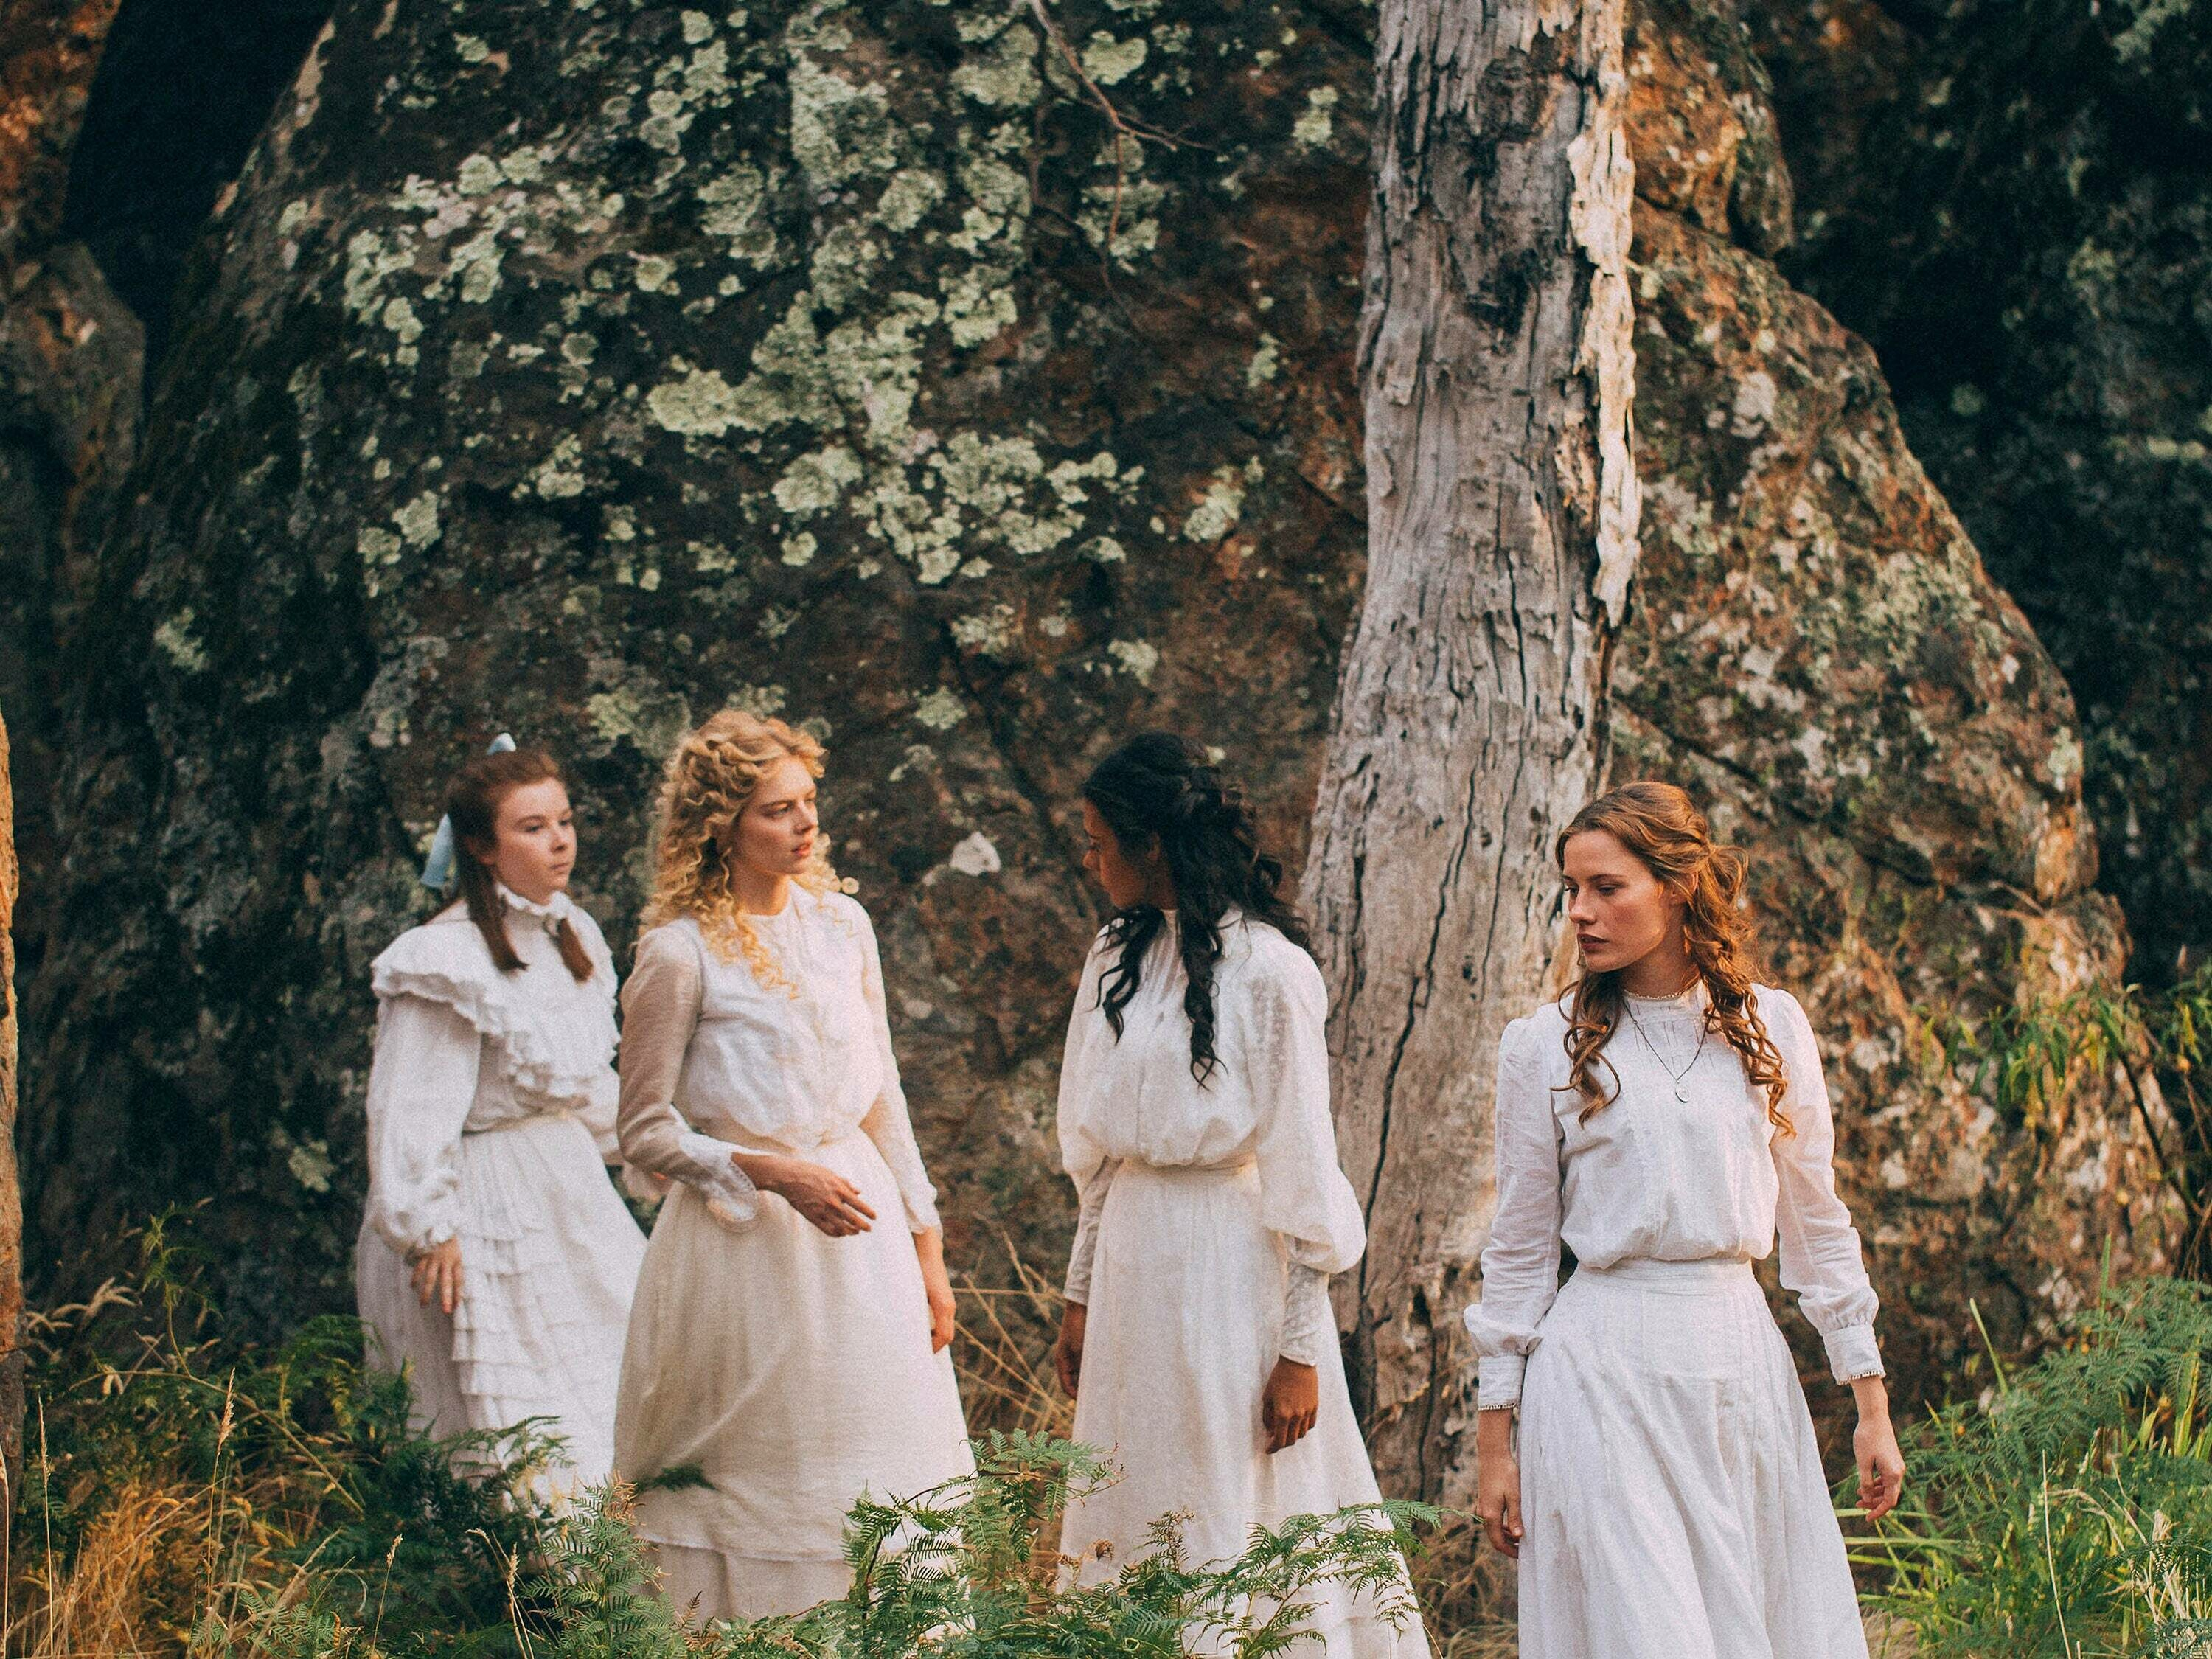 still from Picnic at Hanging Rock (Peter Weir, AU 1975)